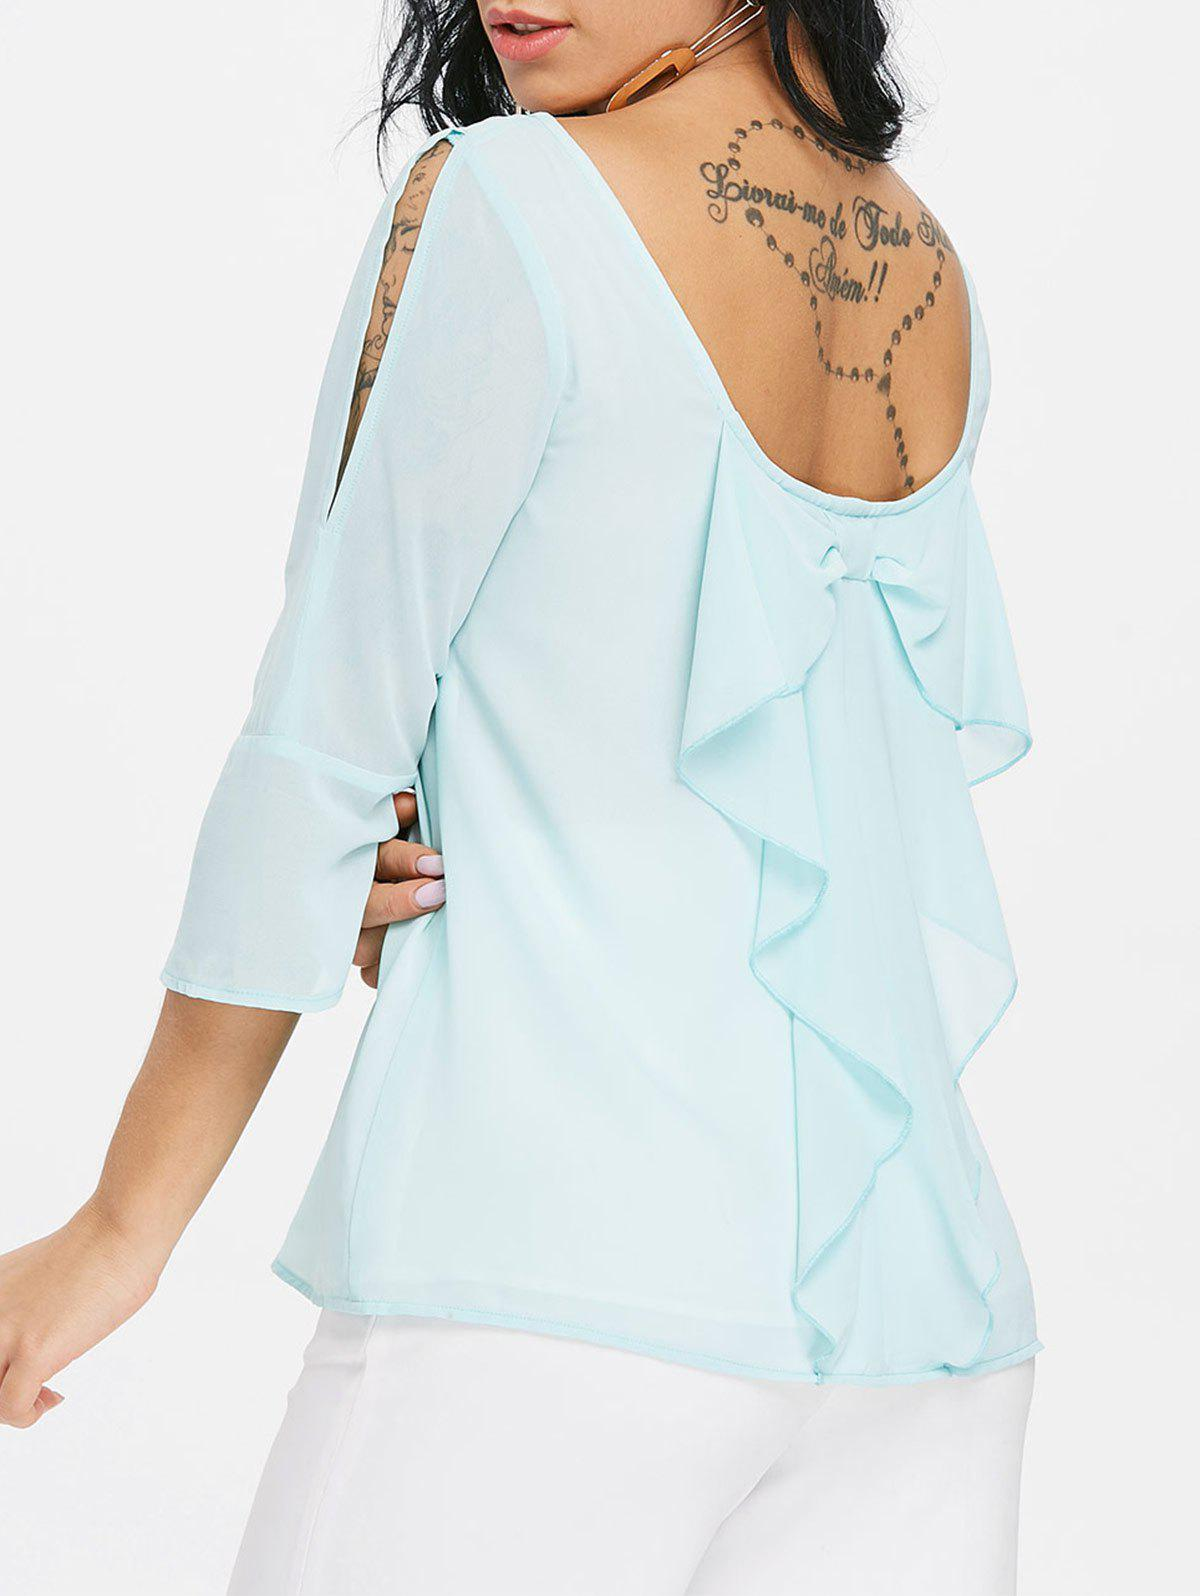 Best Low Back Chiffon Blouse with Bowknot